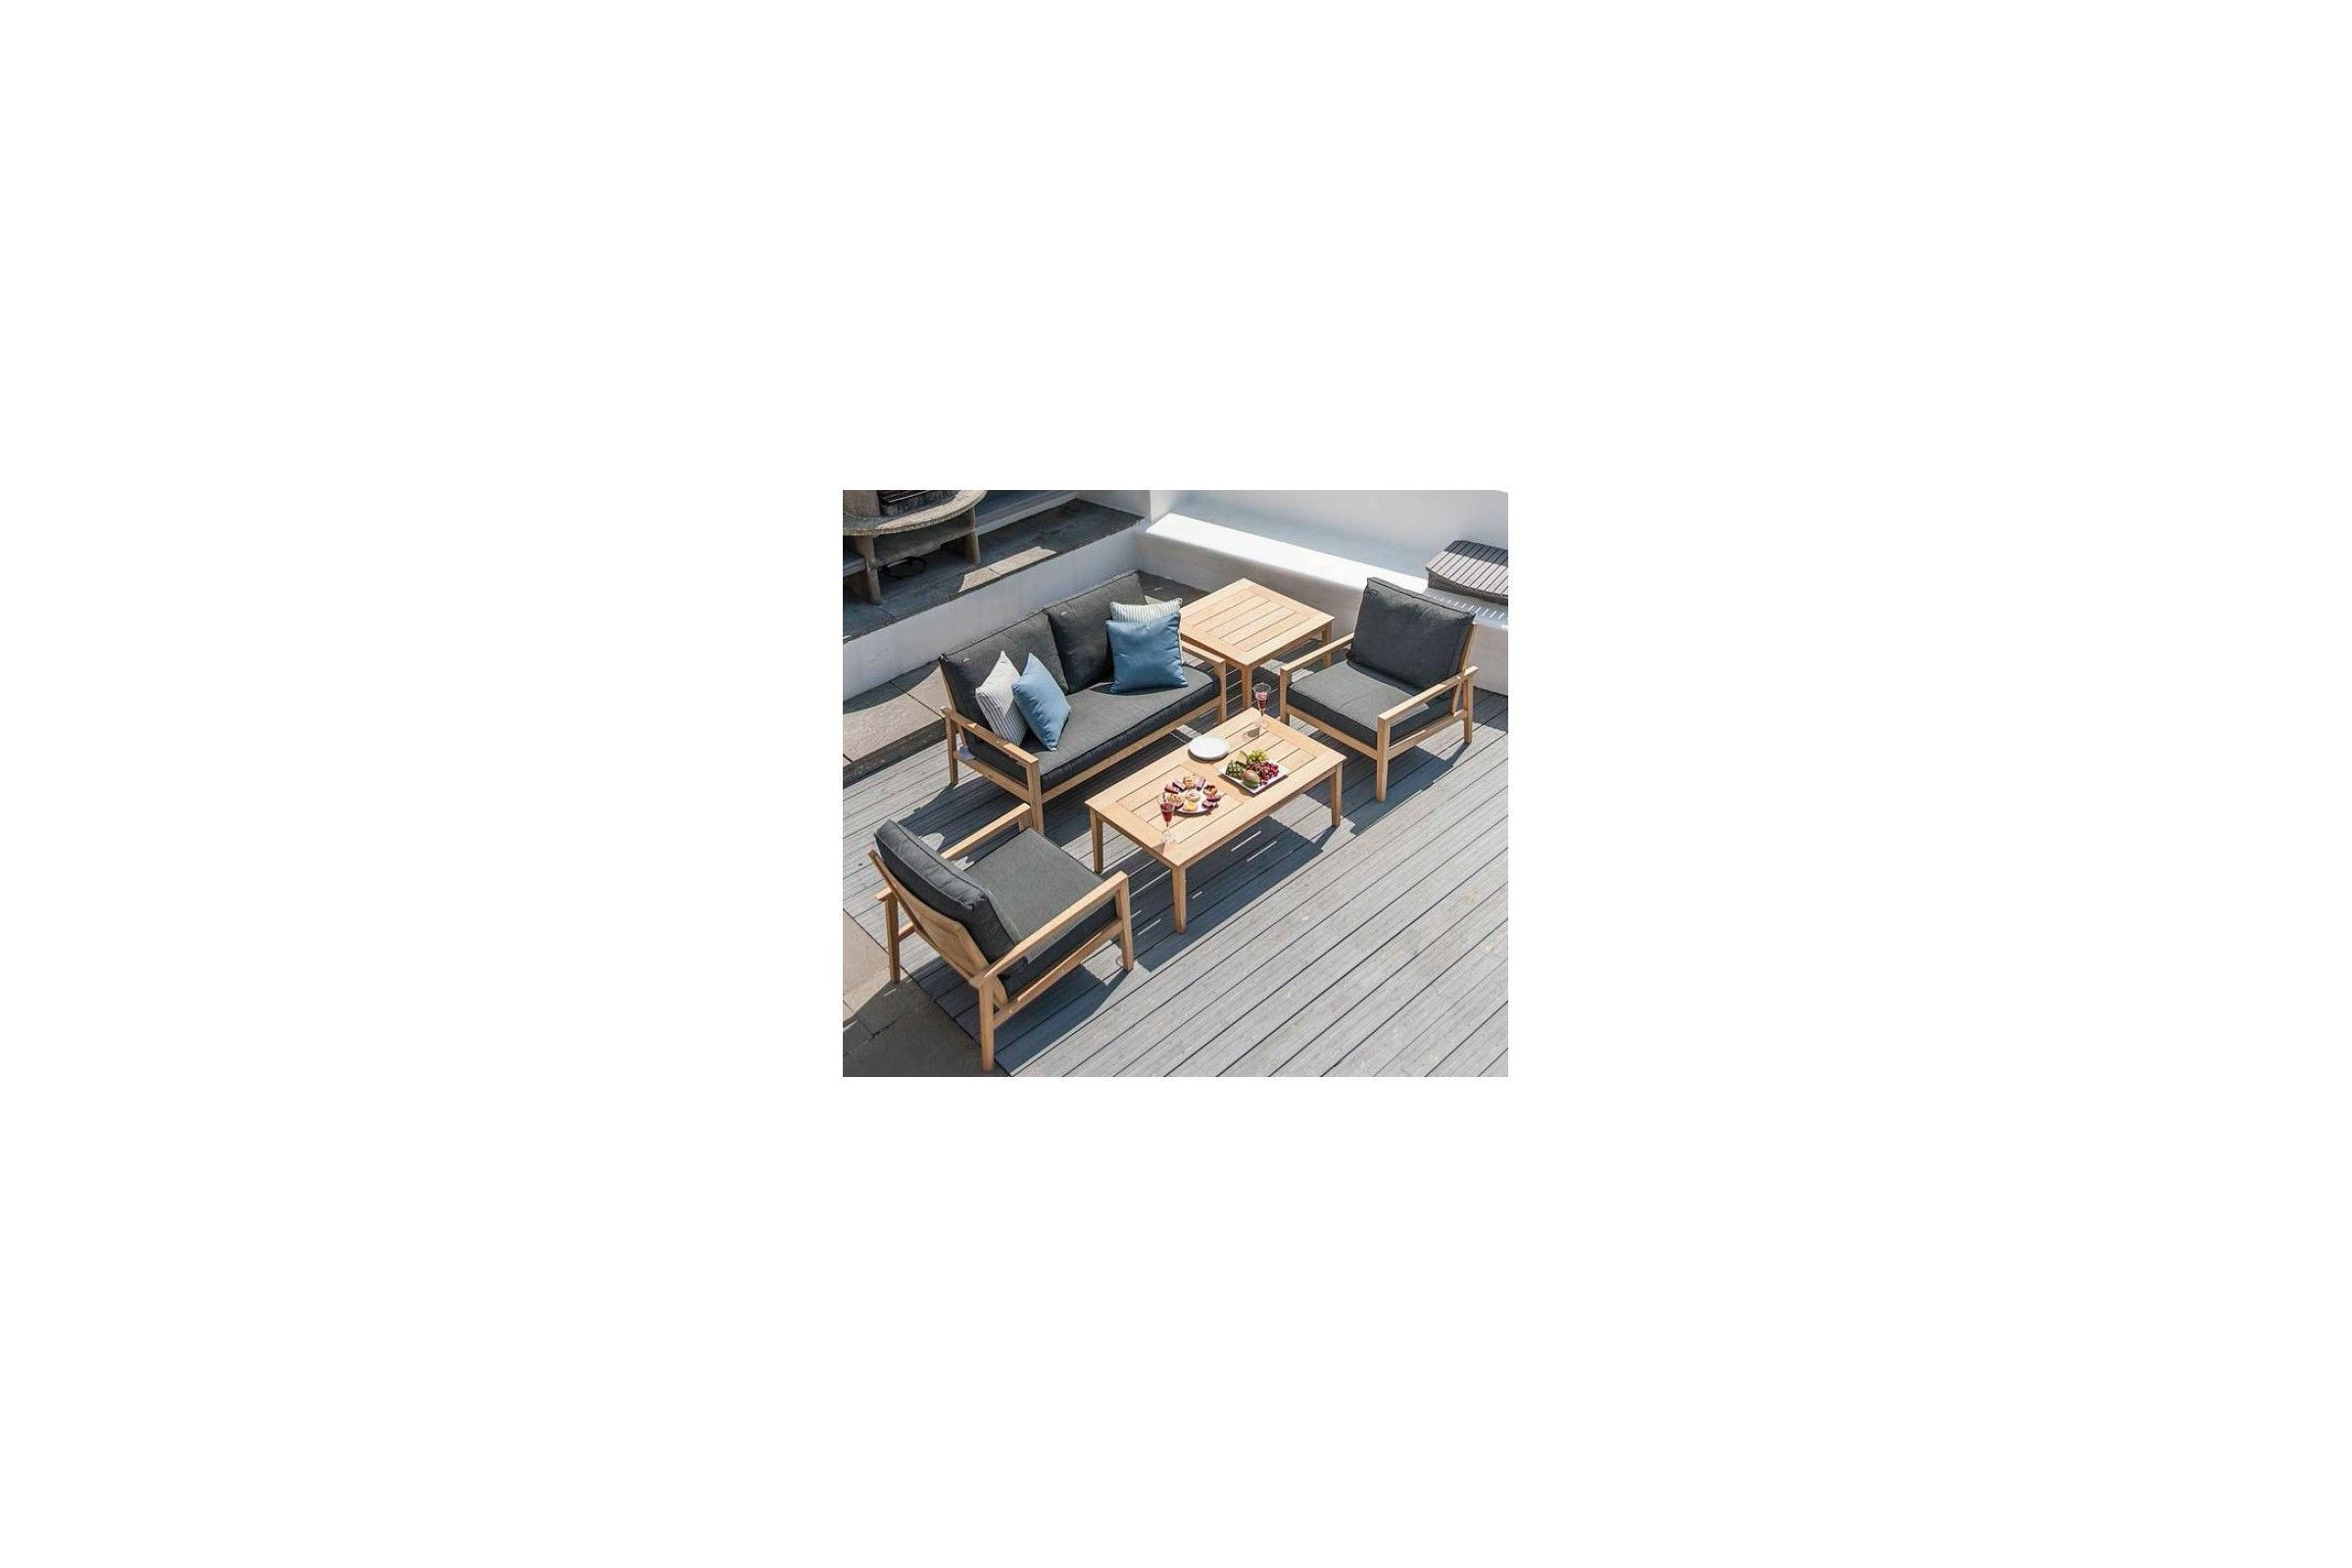 table basse en bois pour salon de jardin 120 cm haut de gamme la galerie du teck. Black Bedroom Furniture Sets. Home Design Ideas